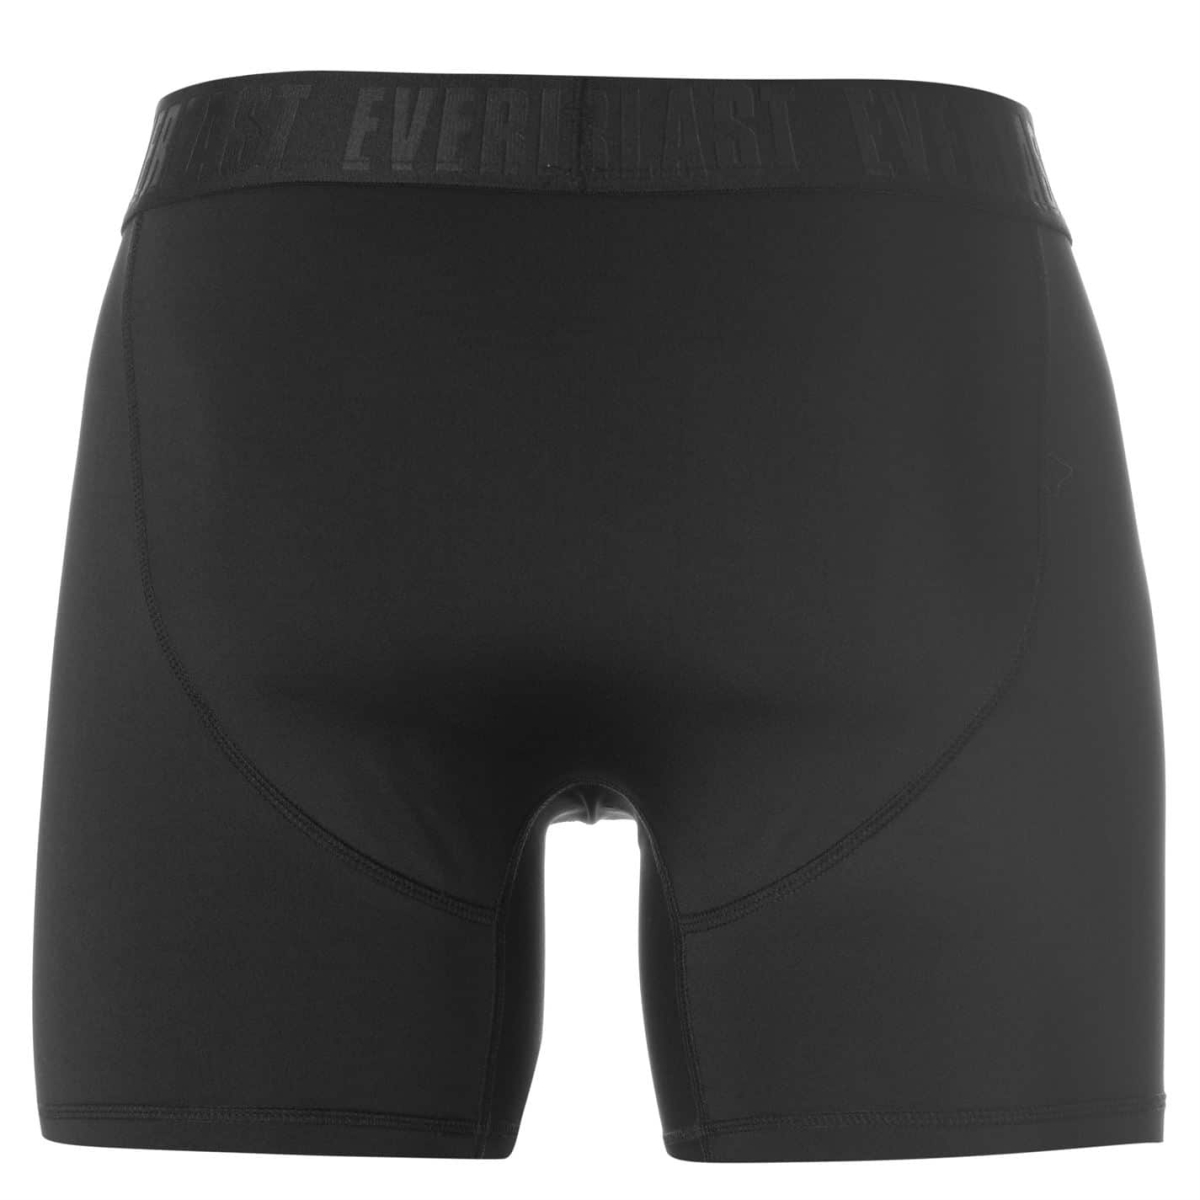 Everlast Training Trunk 2 Stück Boxershorts Herren